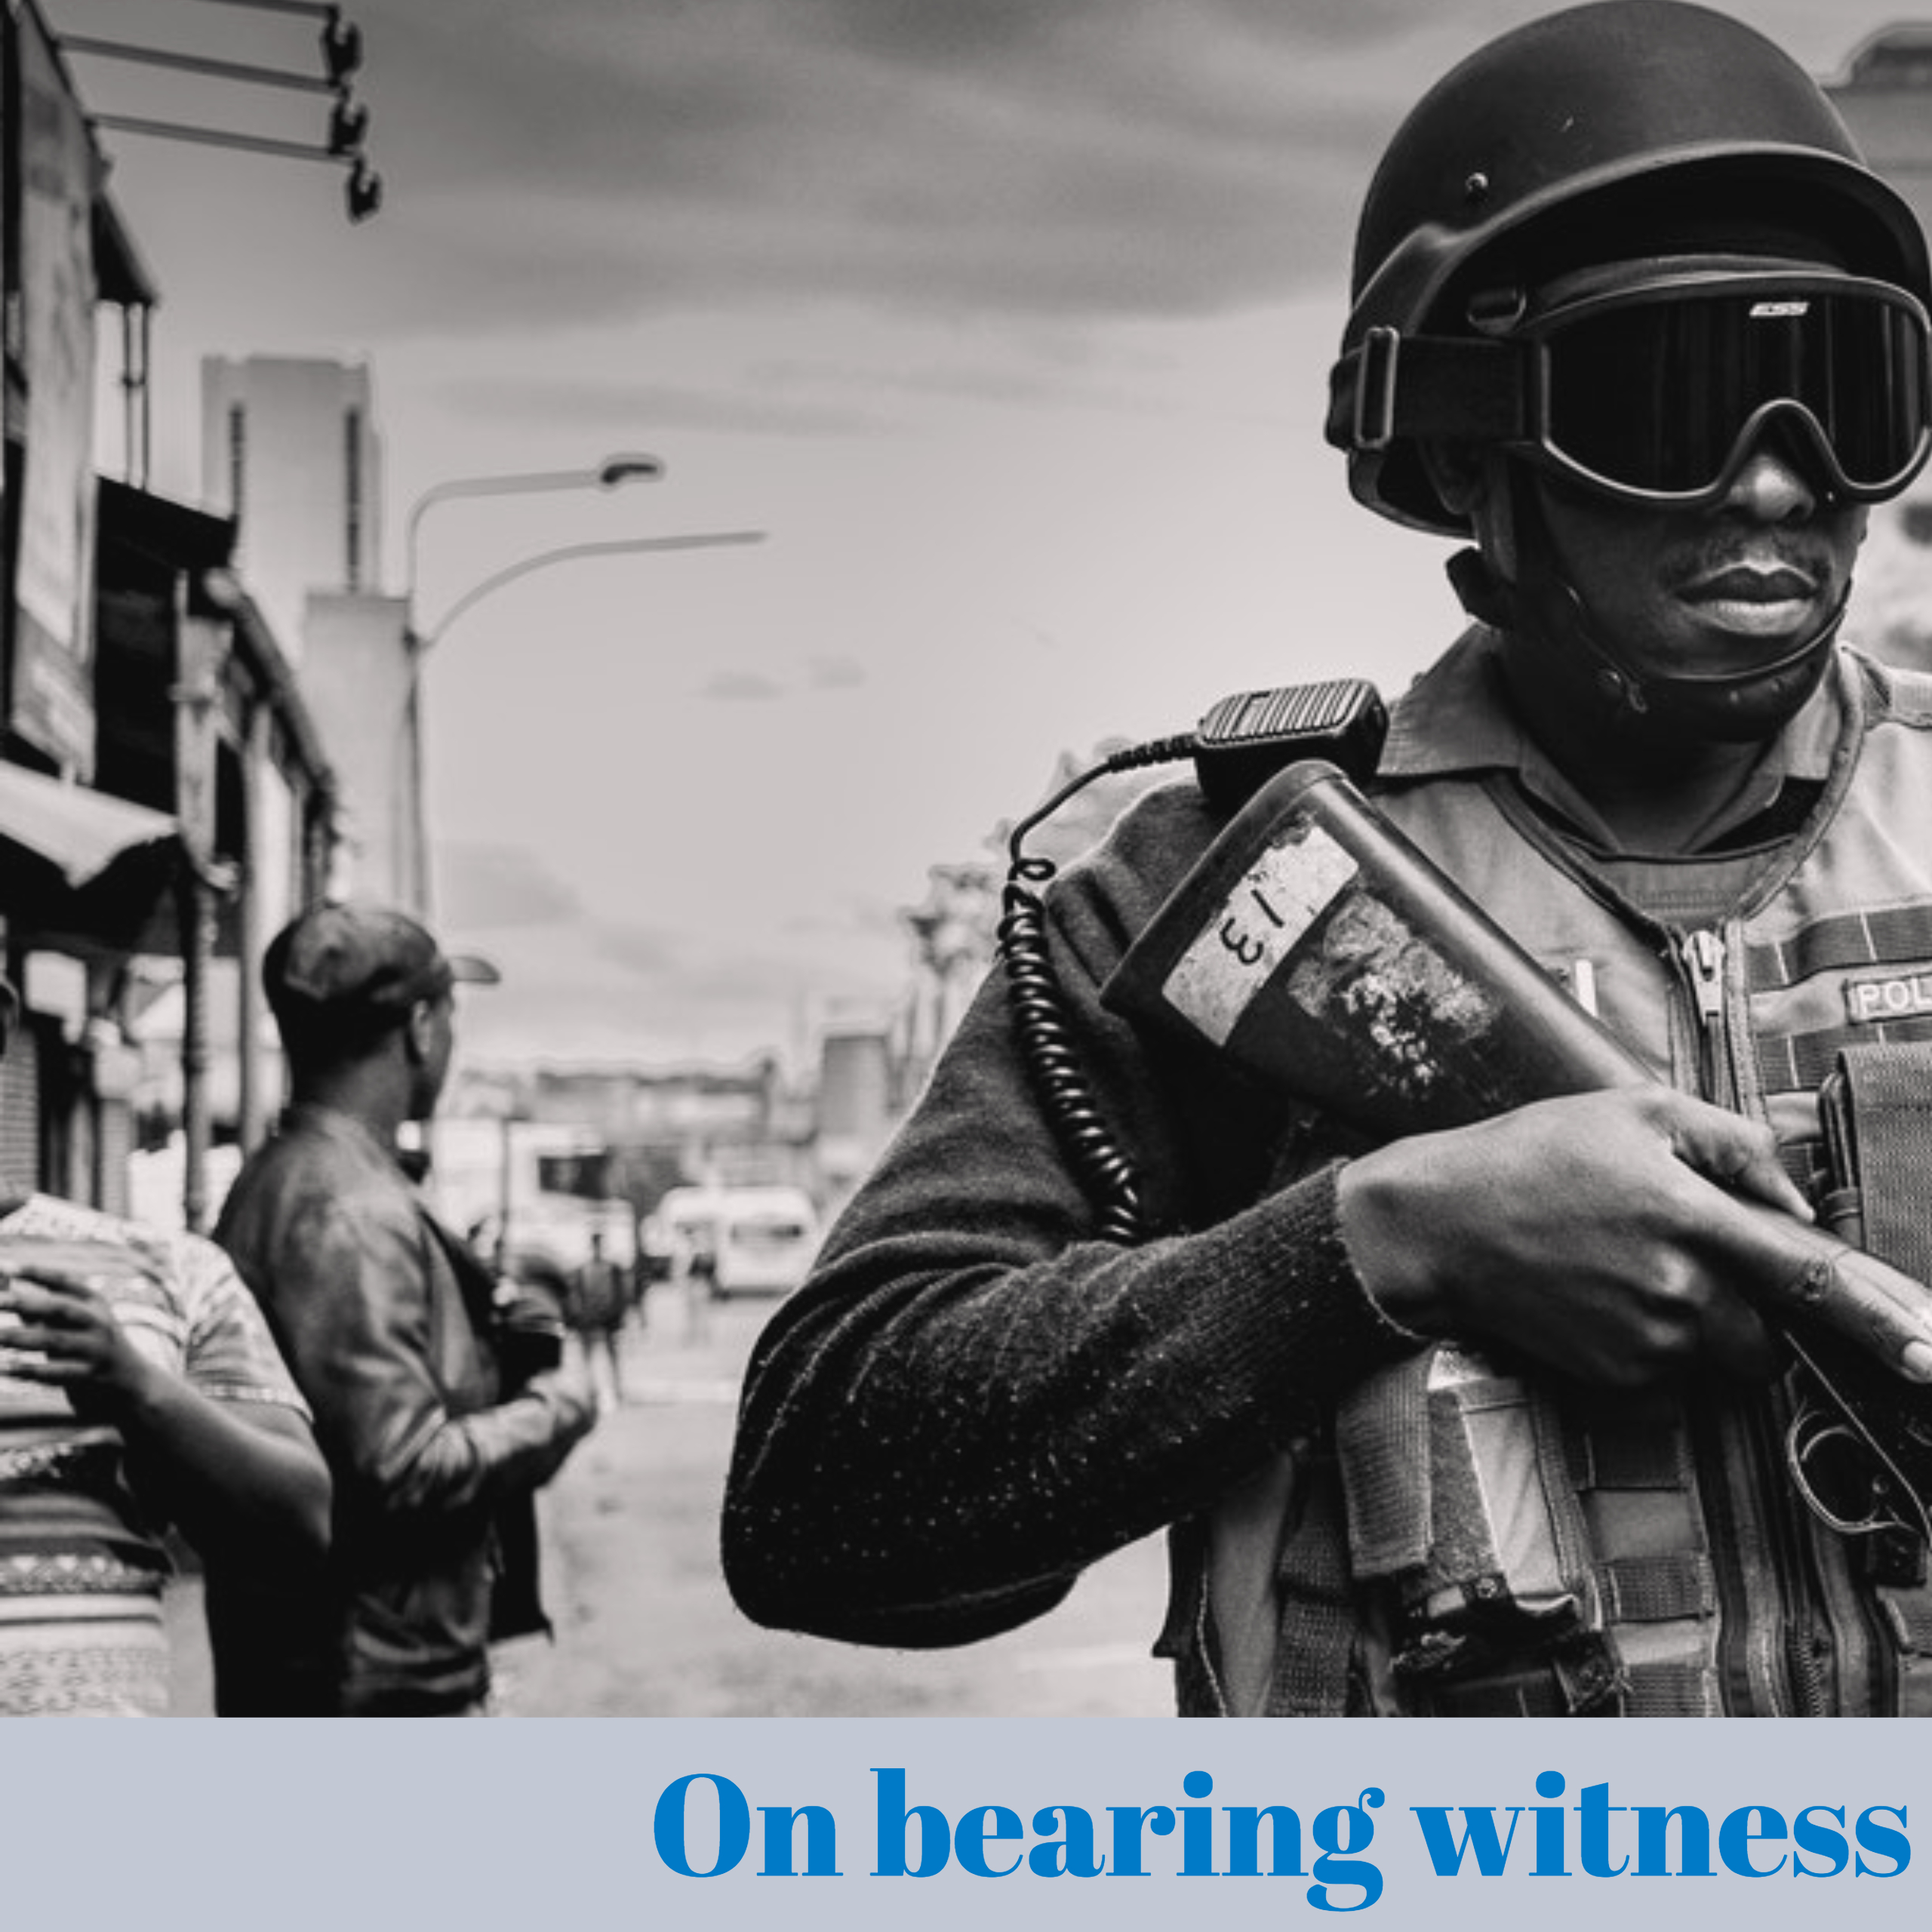 On bearing witness...